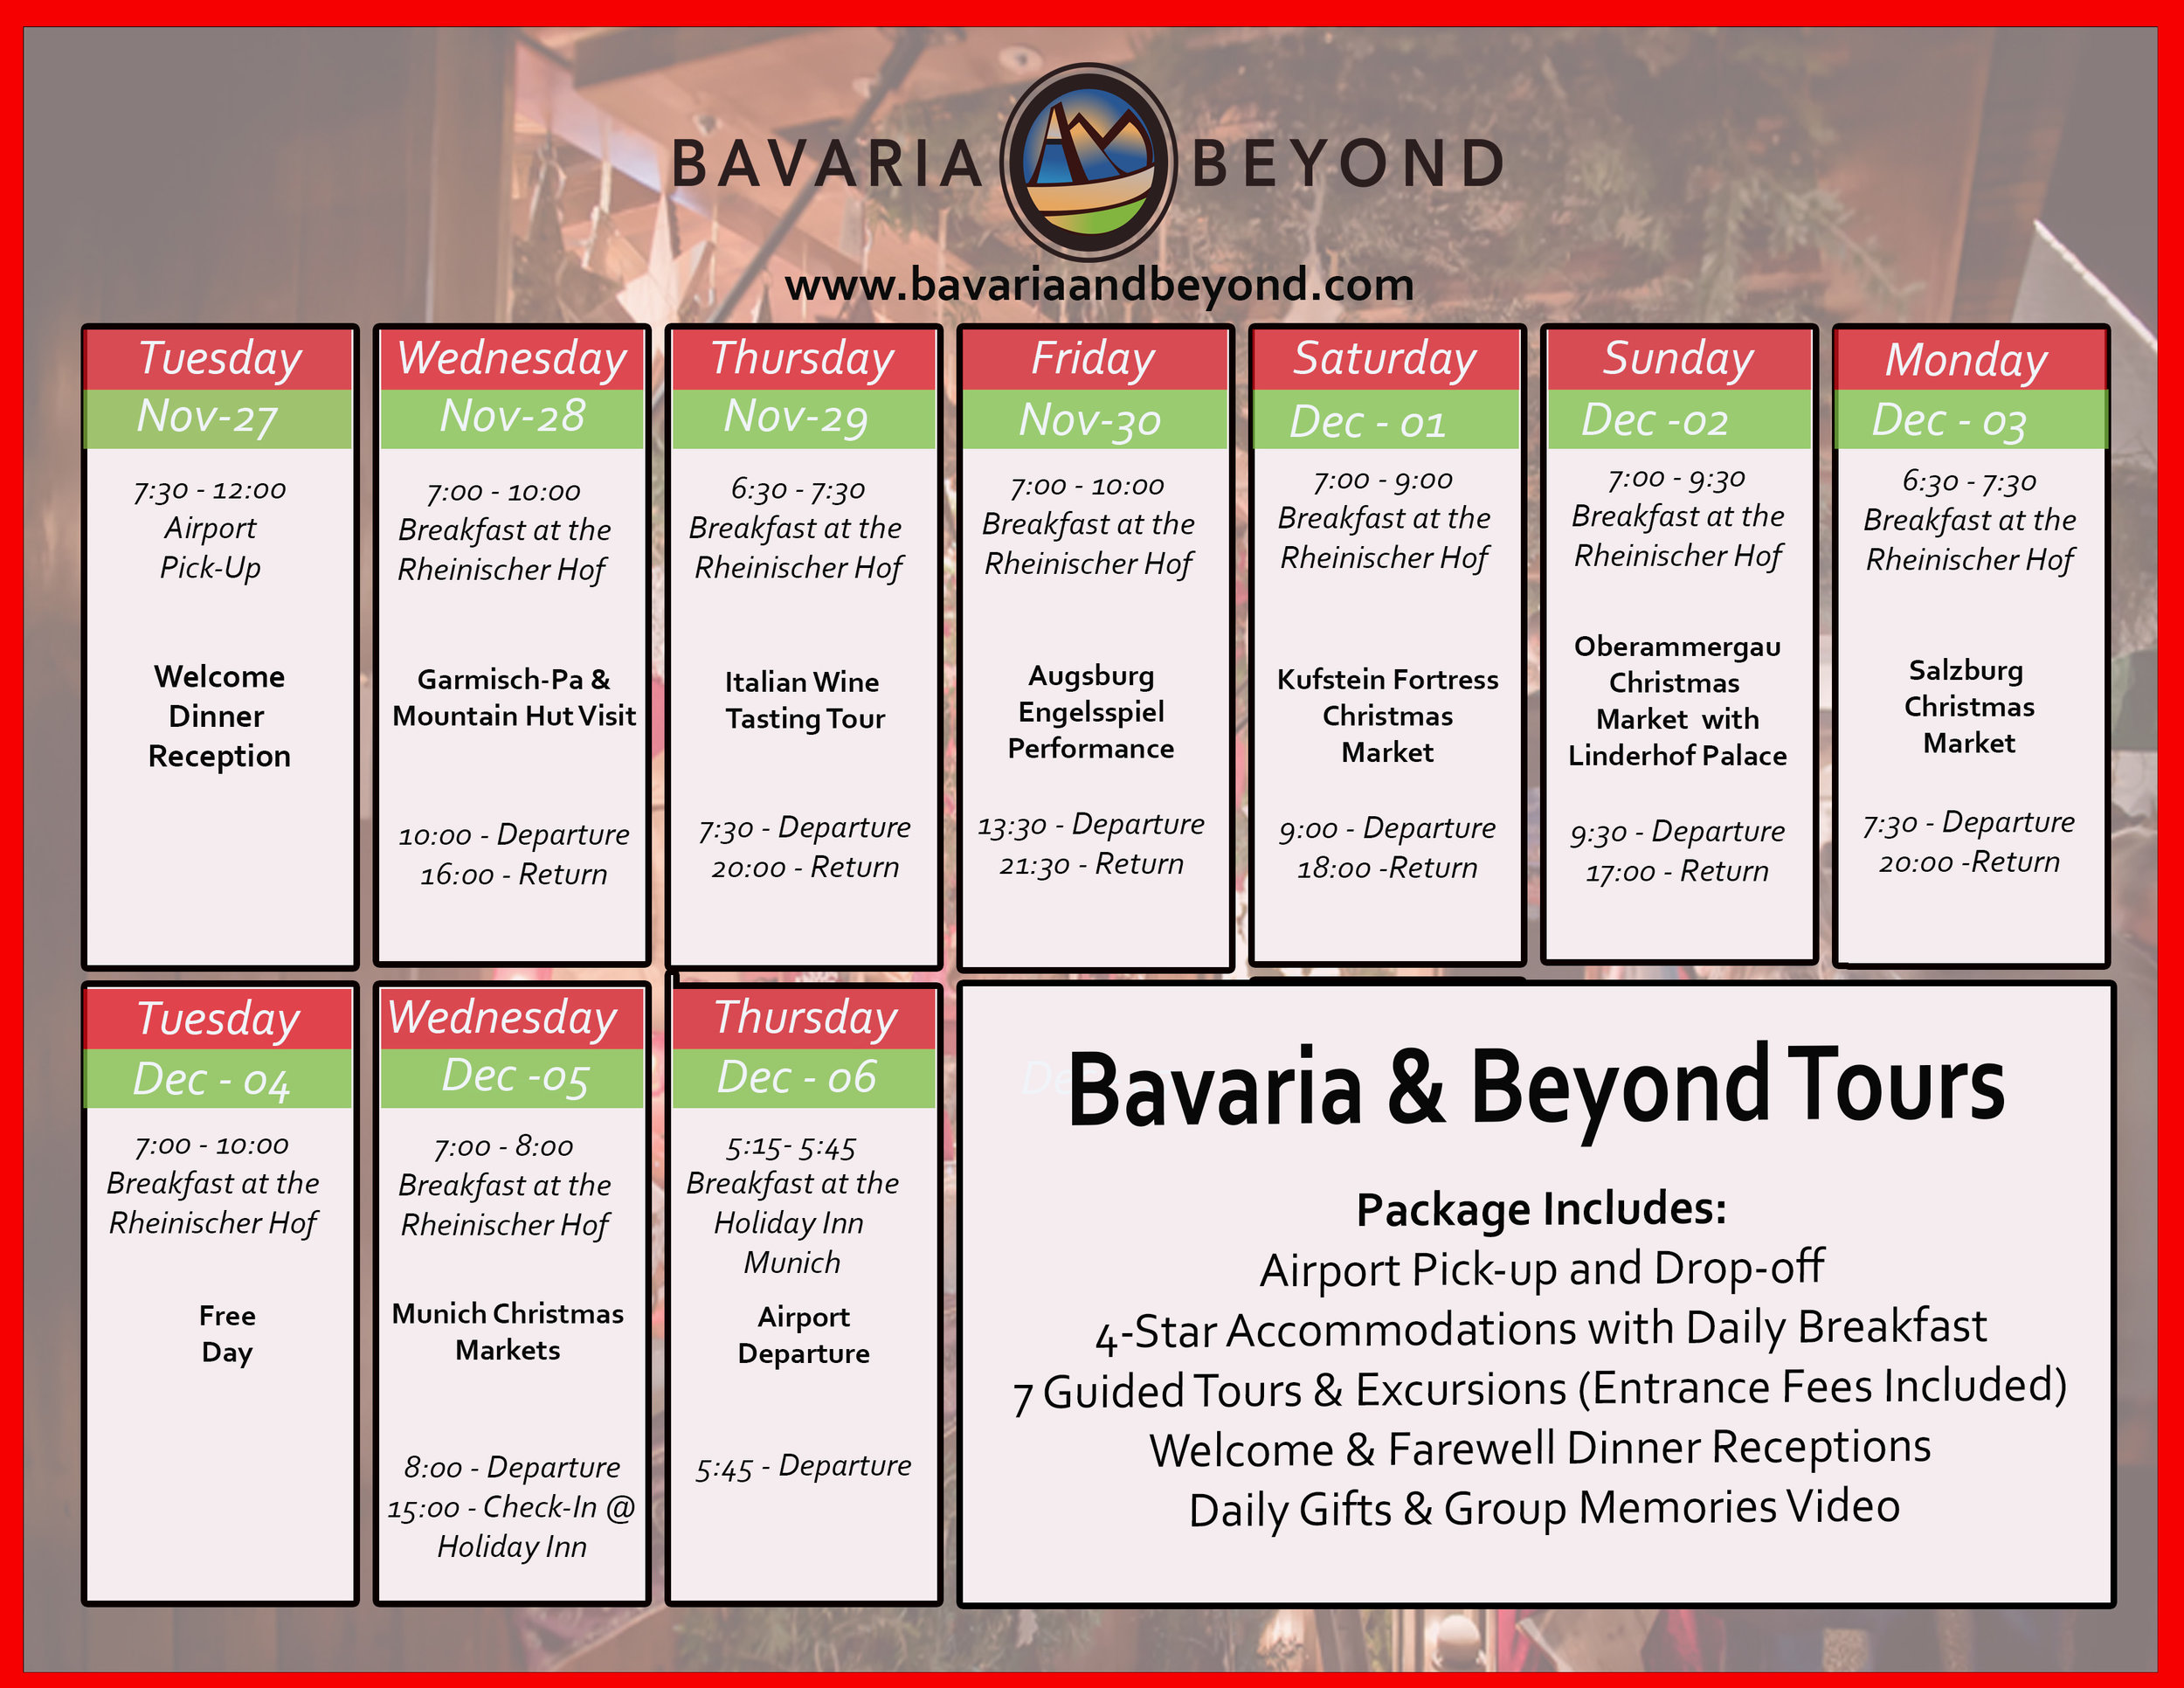 CLICK ON THE ABOVE ITINERARY TO PRINT